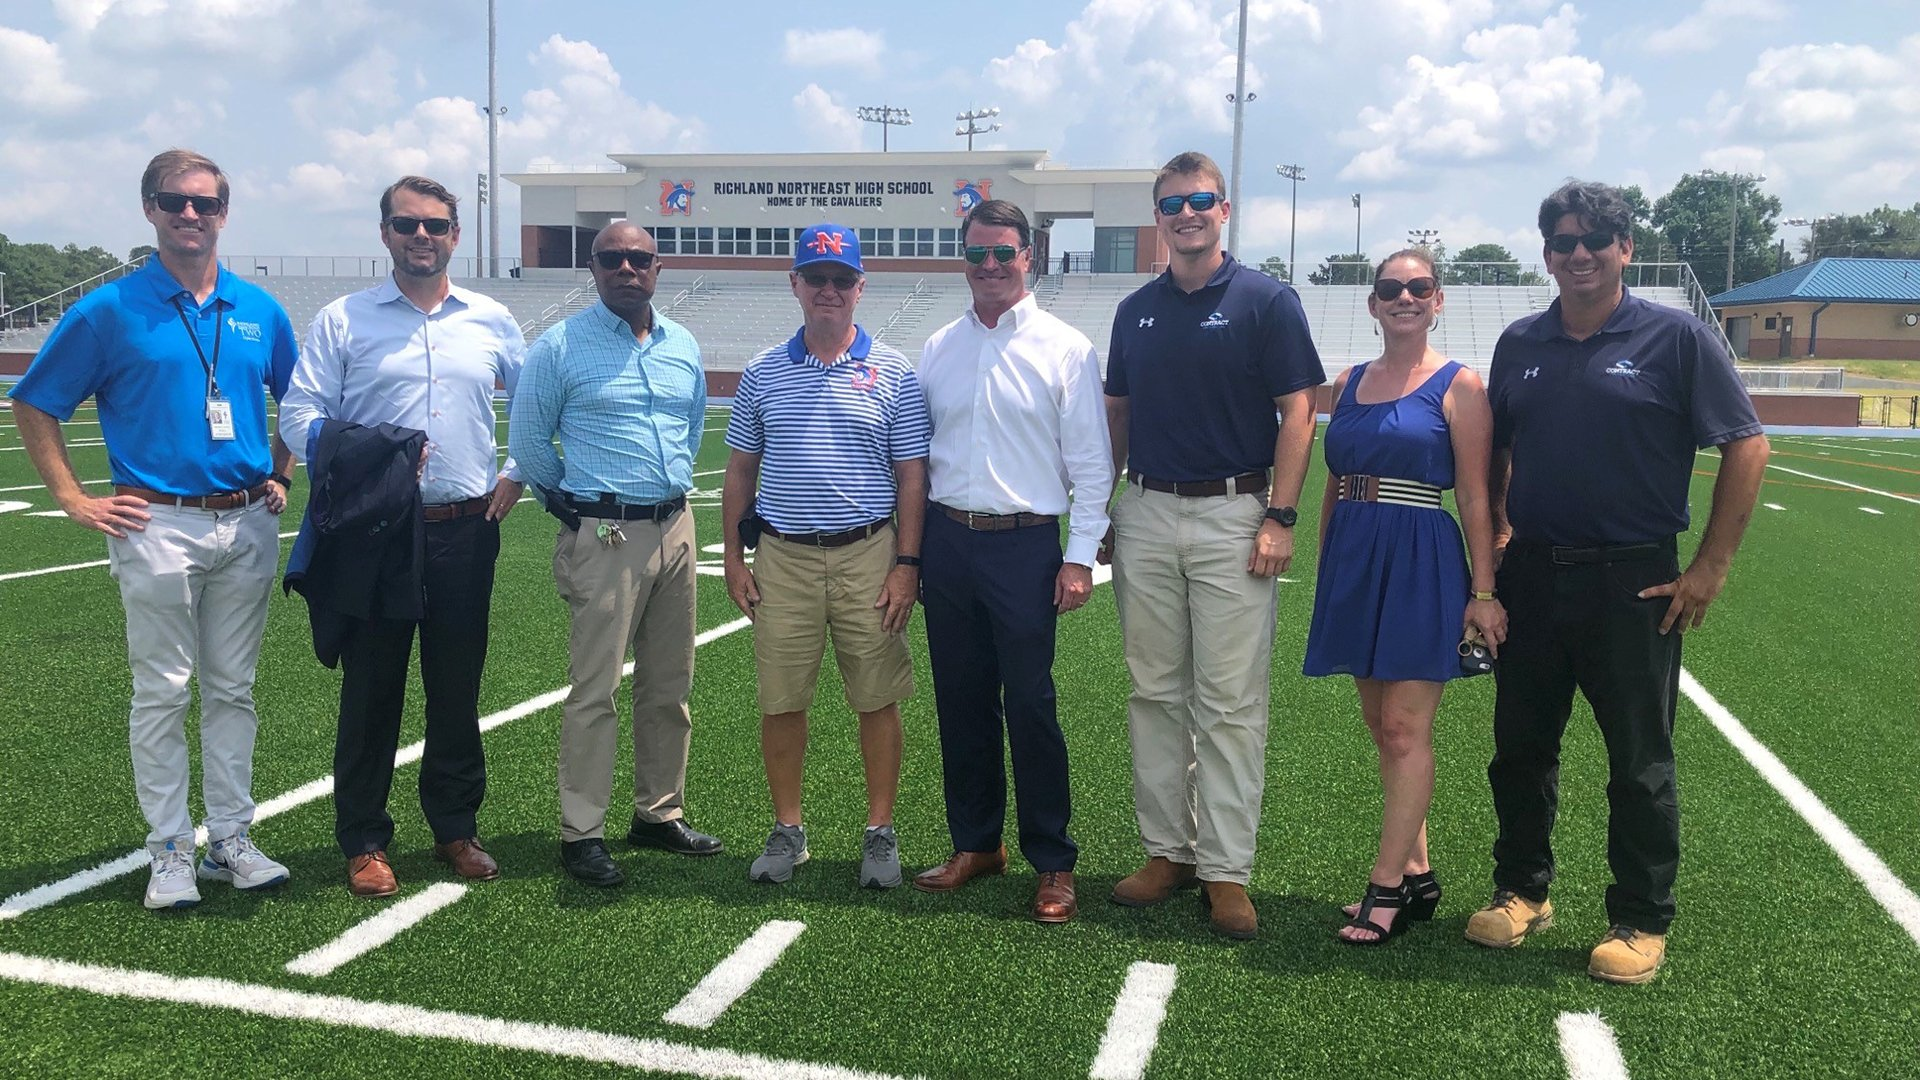 Pictured: 2nd from left, Ben Thompson at the Richland NE High School Stadium